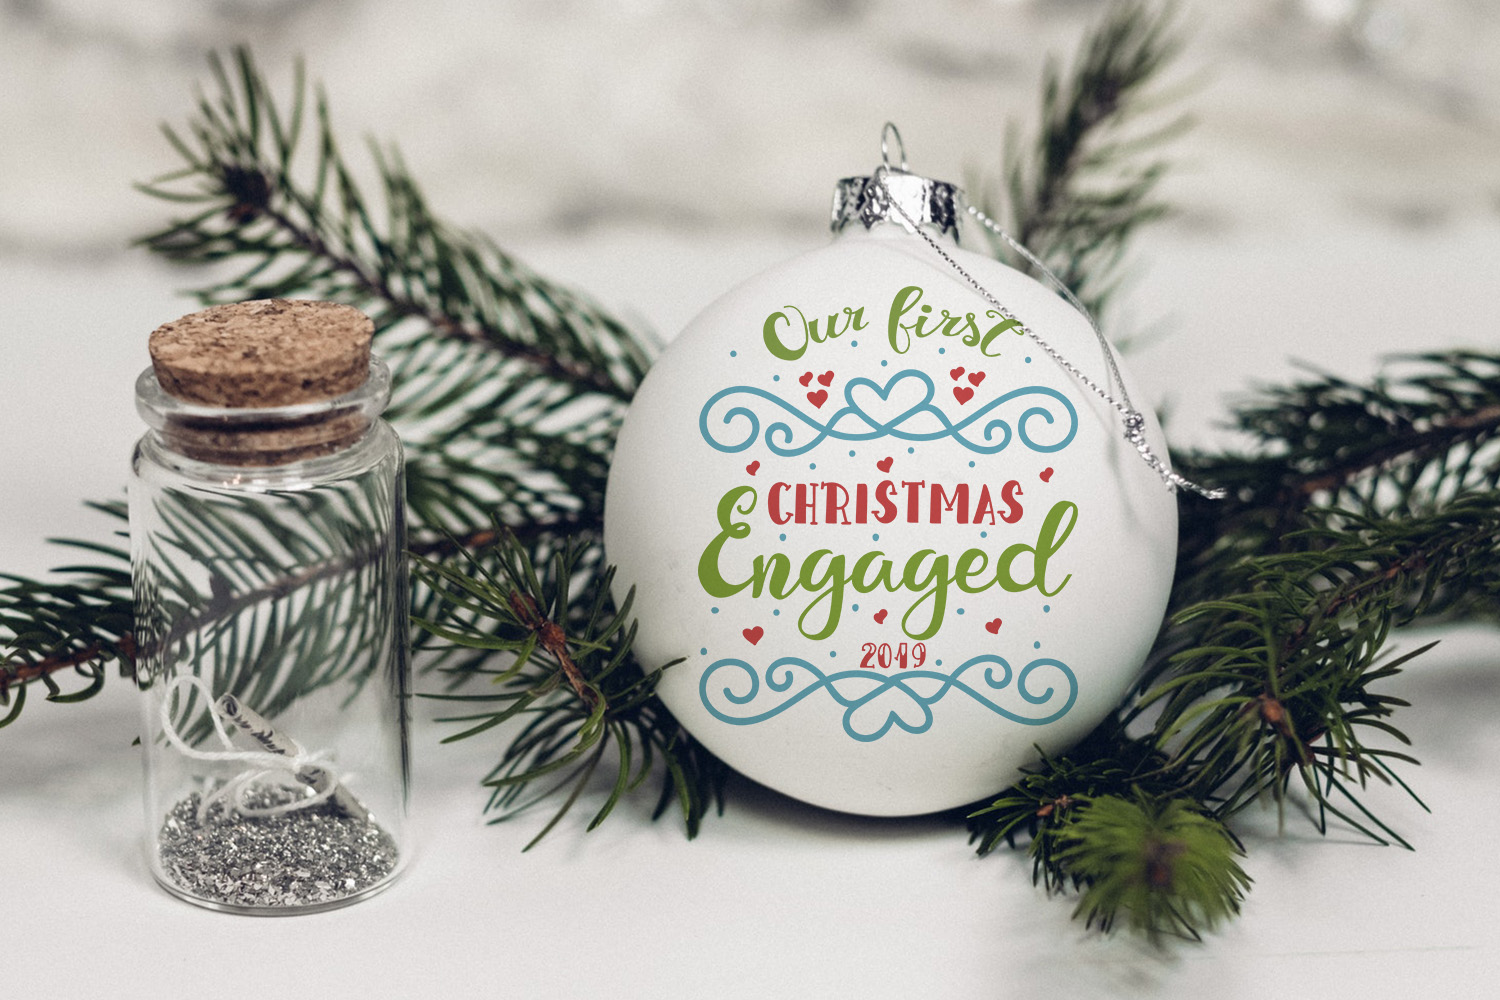 Our first Christmas engaged example image 3